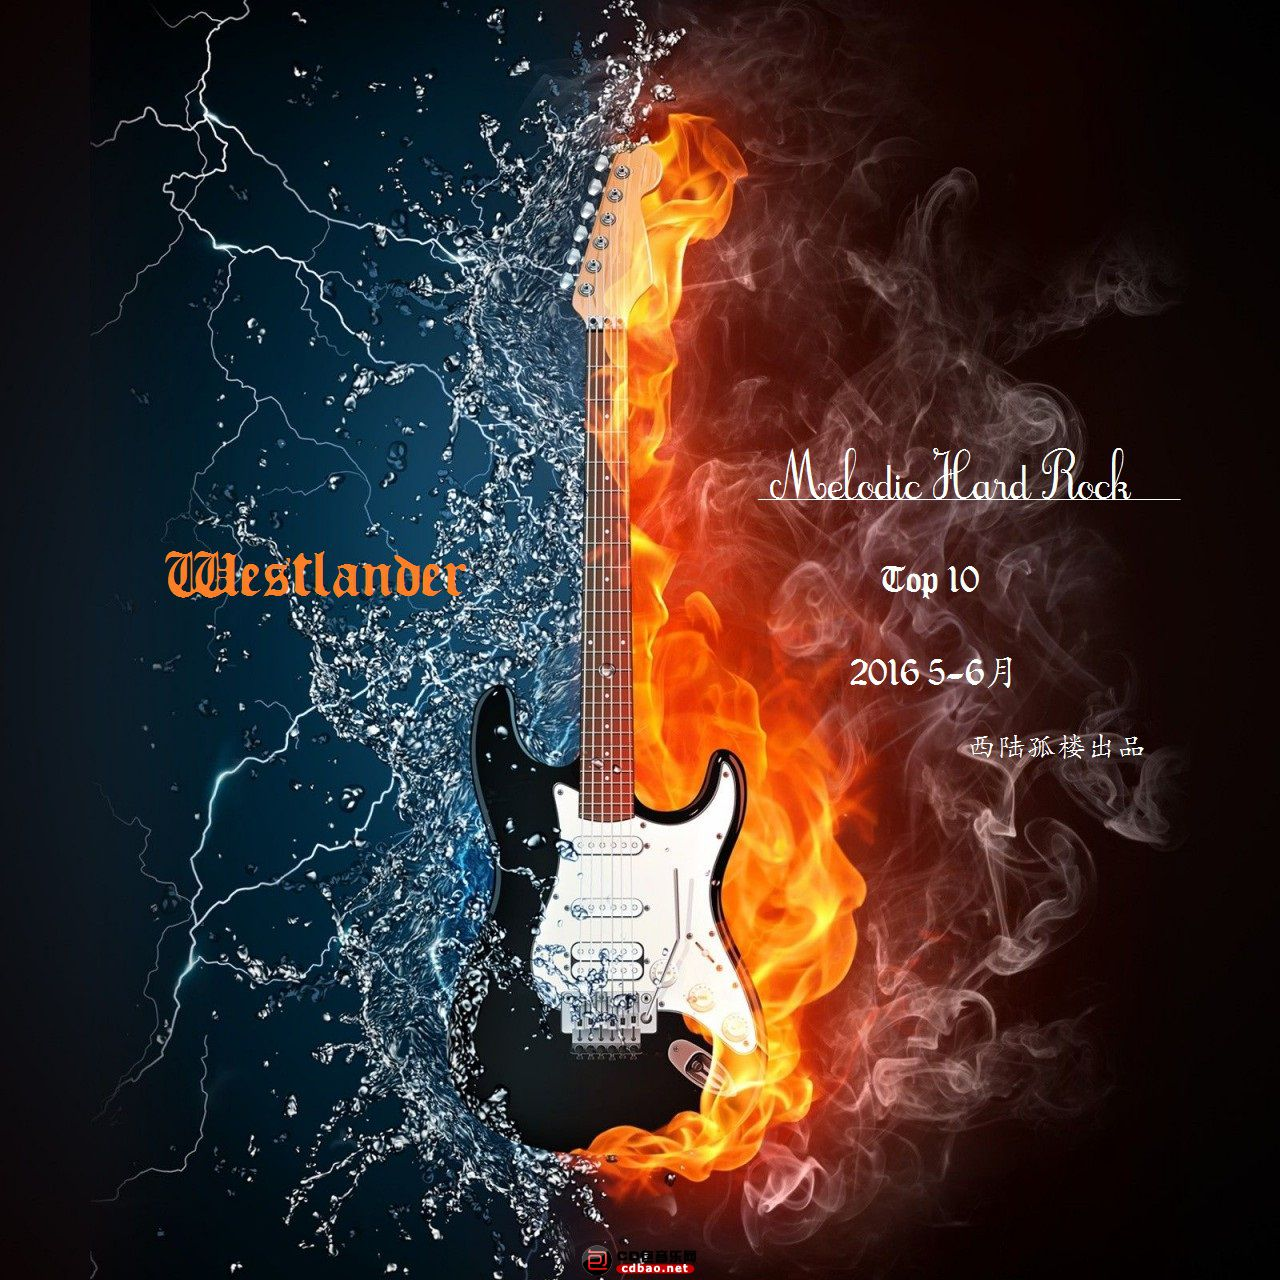 all-image-files-image-files-guitar-fire-water-splash-electricity-smoke-3316356.jpg